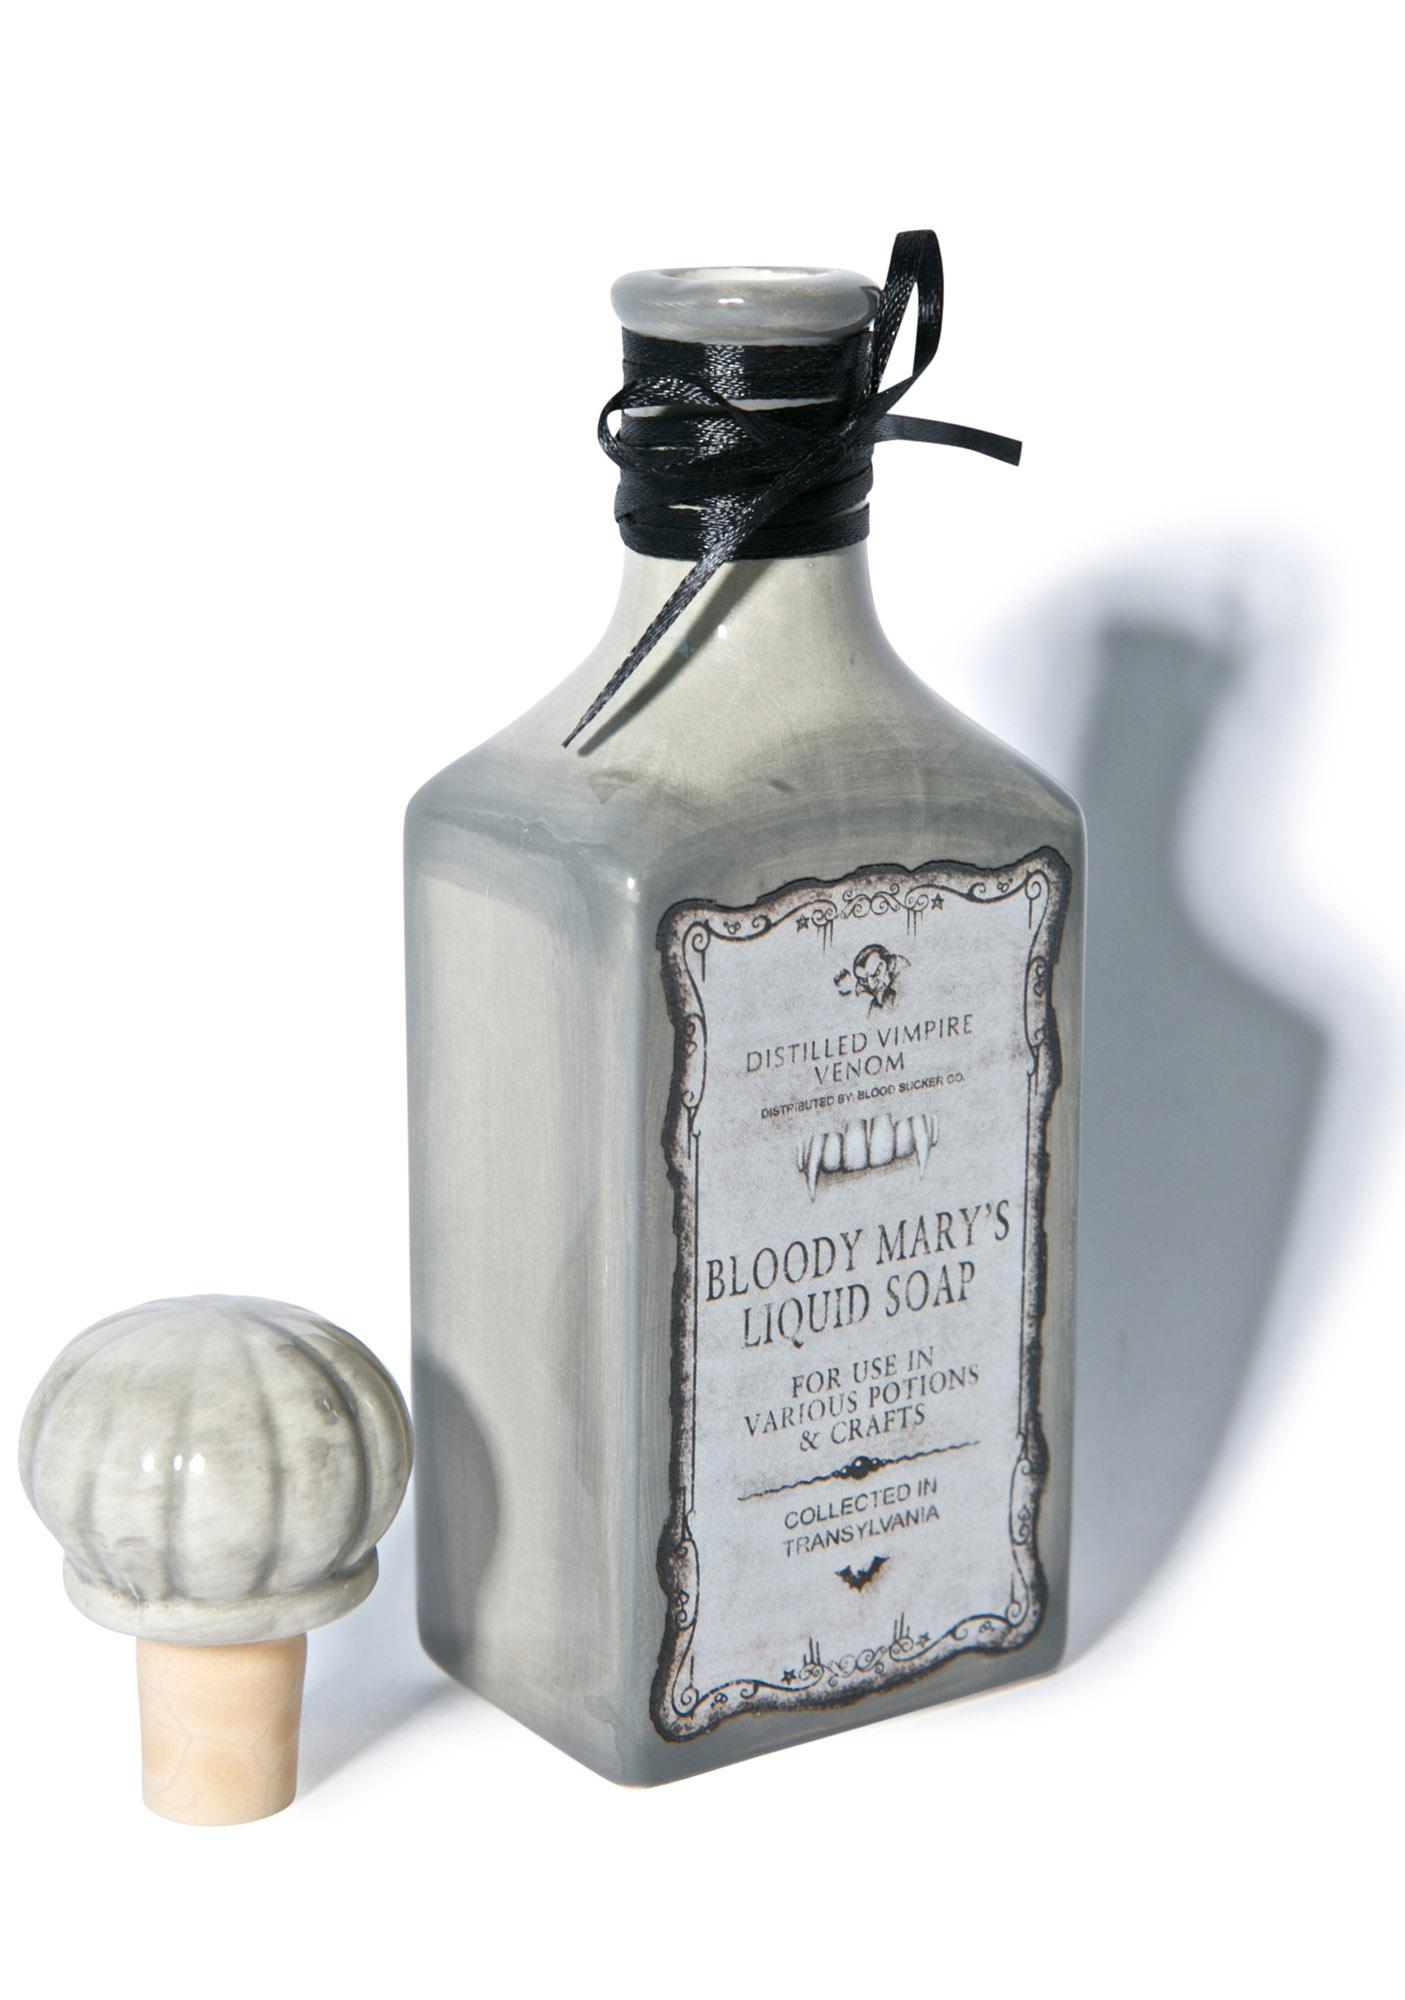 Bloody Mary's Bottle